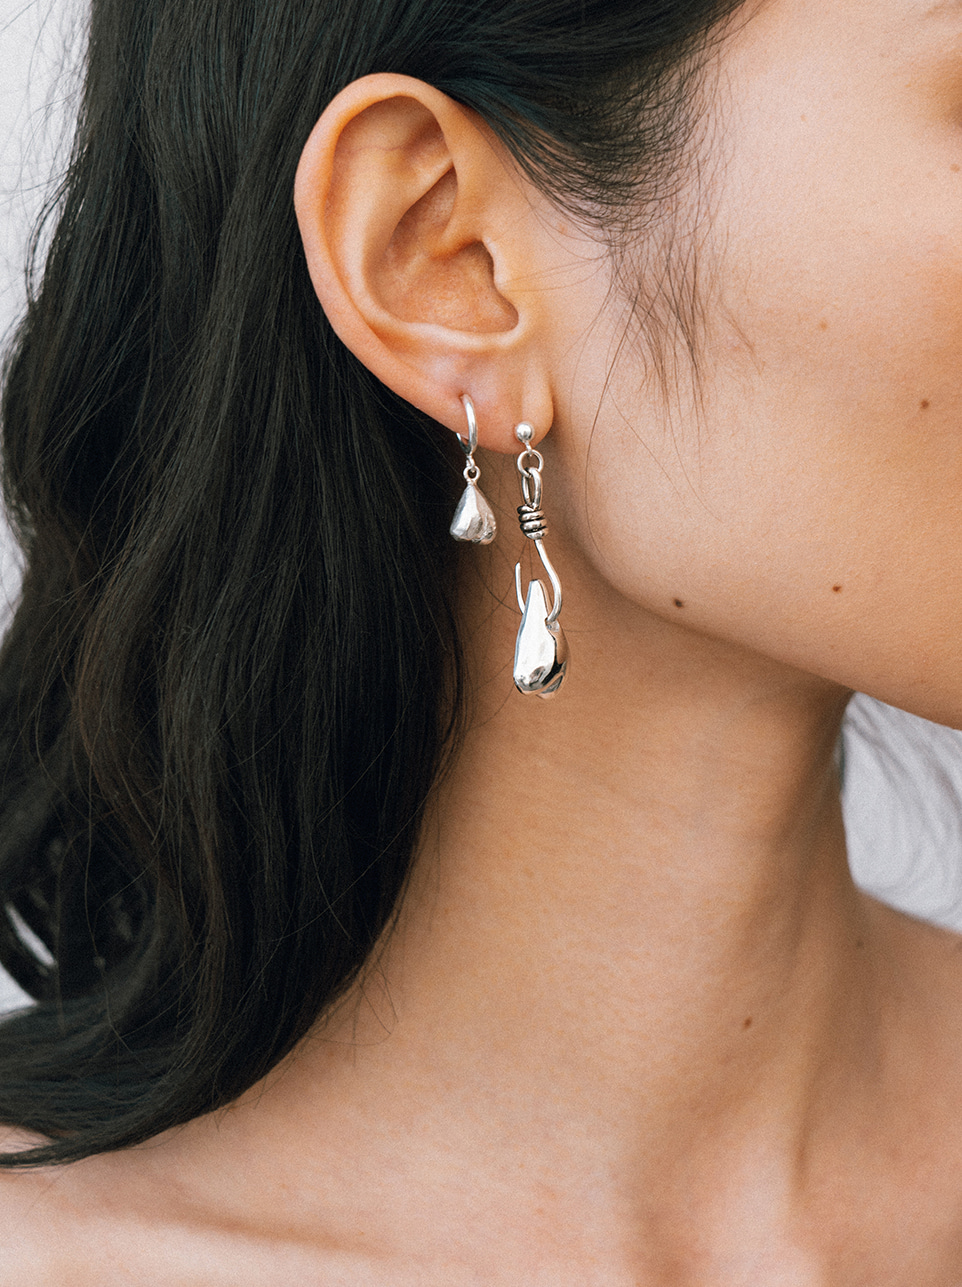 Tiny love hoop earring